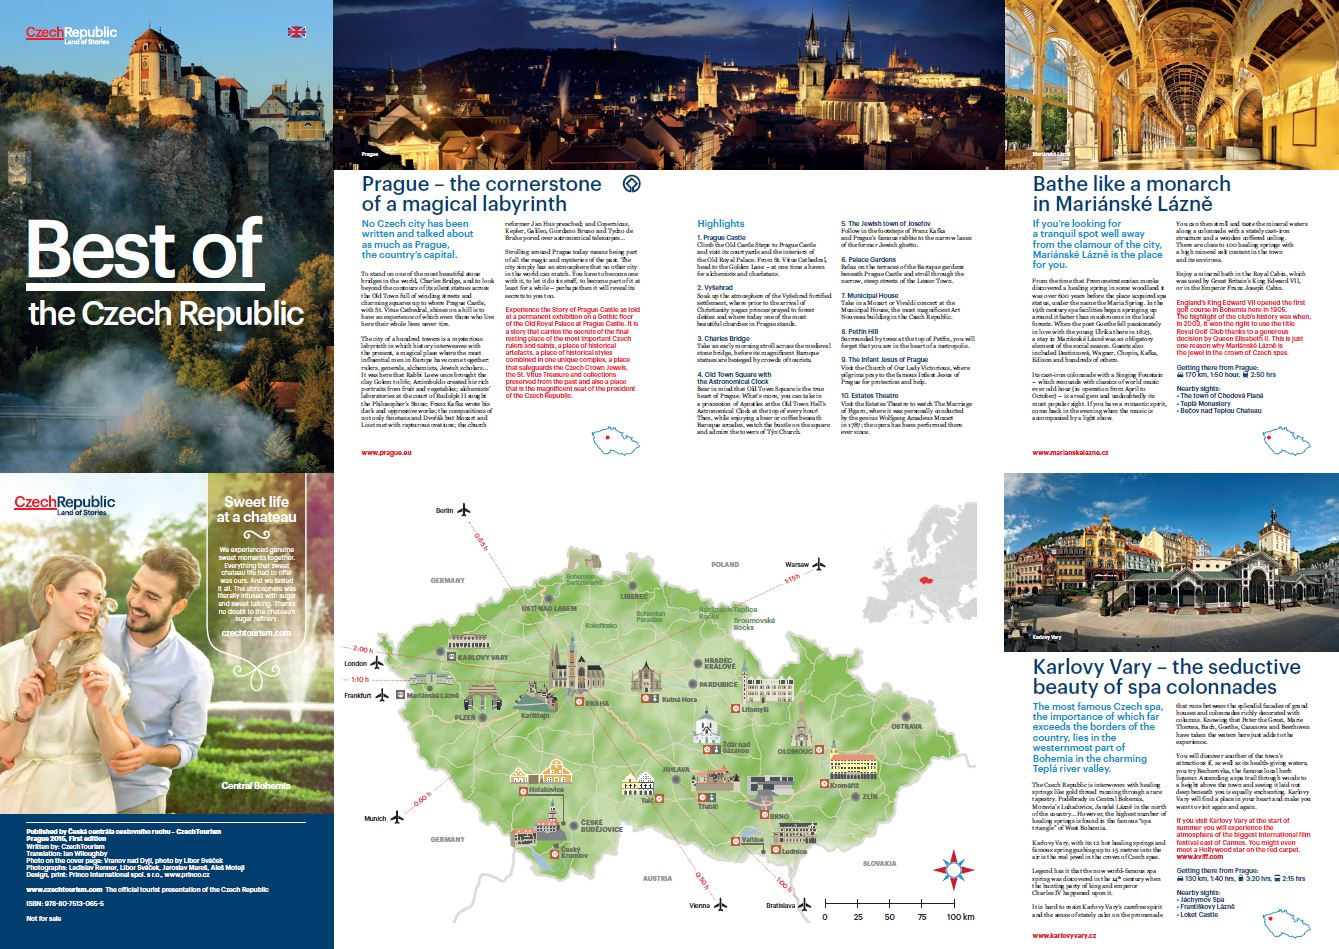 Best of the Czech Republic